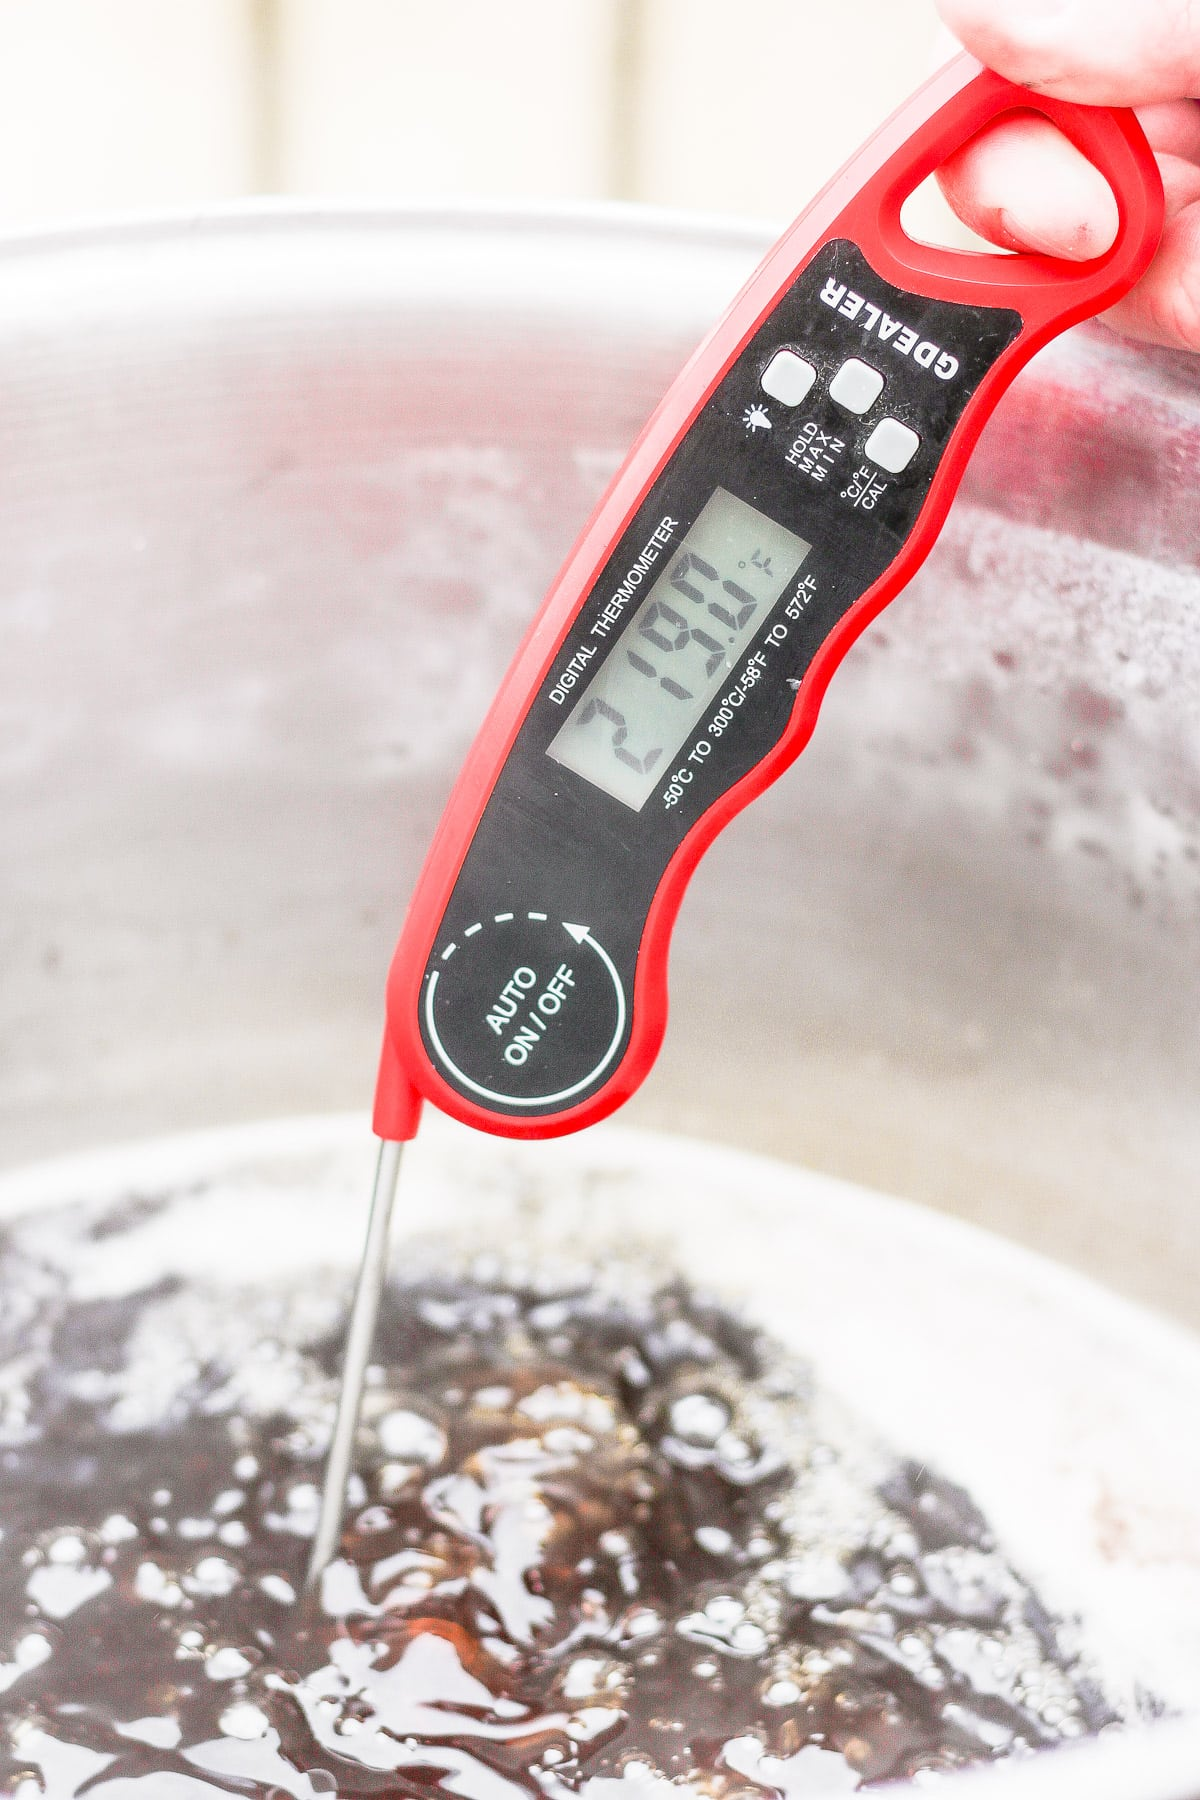 Maple syrup with a digital thermometer showing it is 219 degrees.